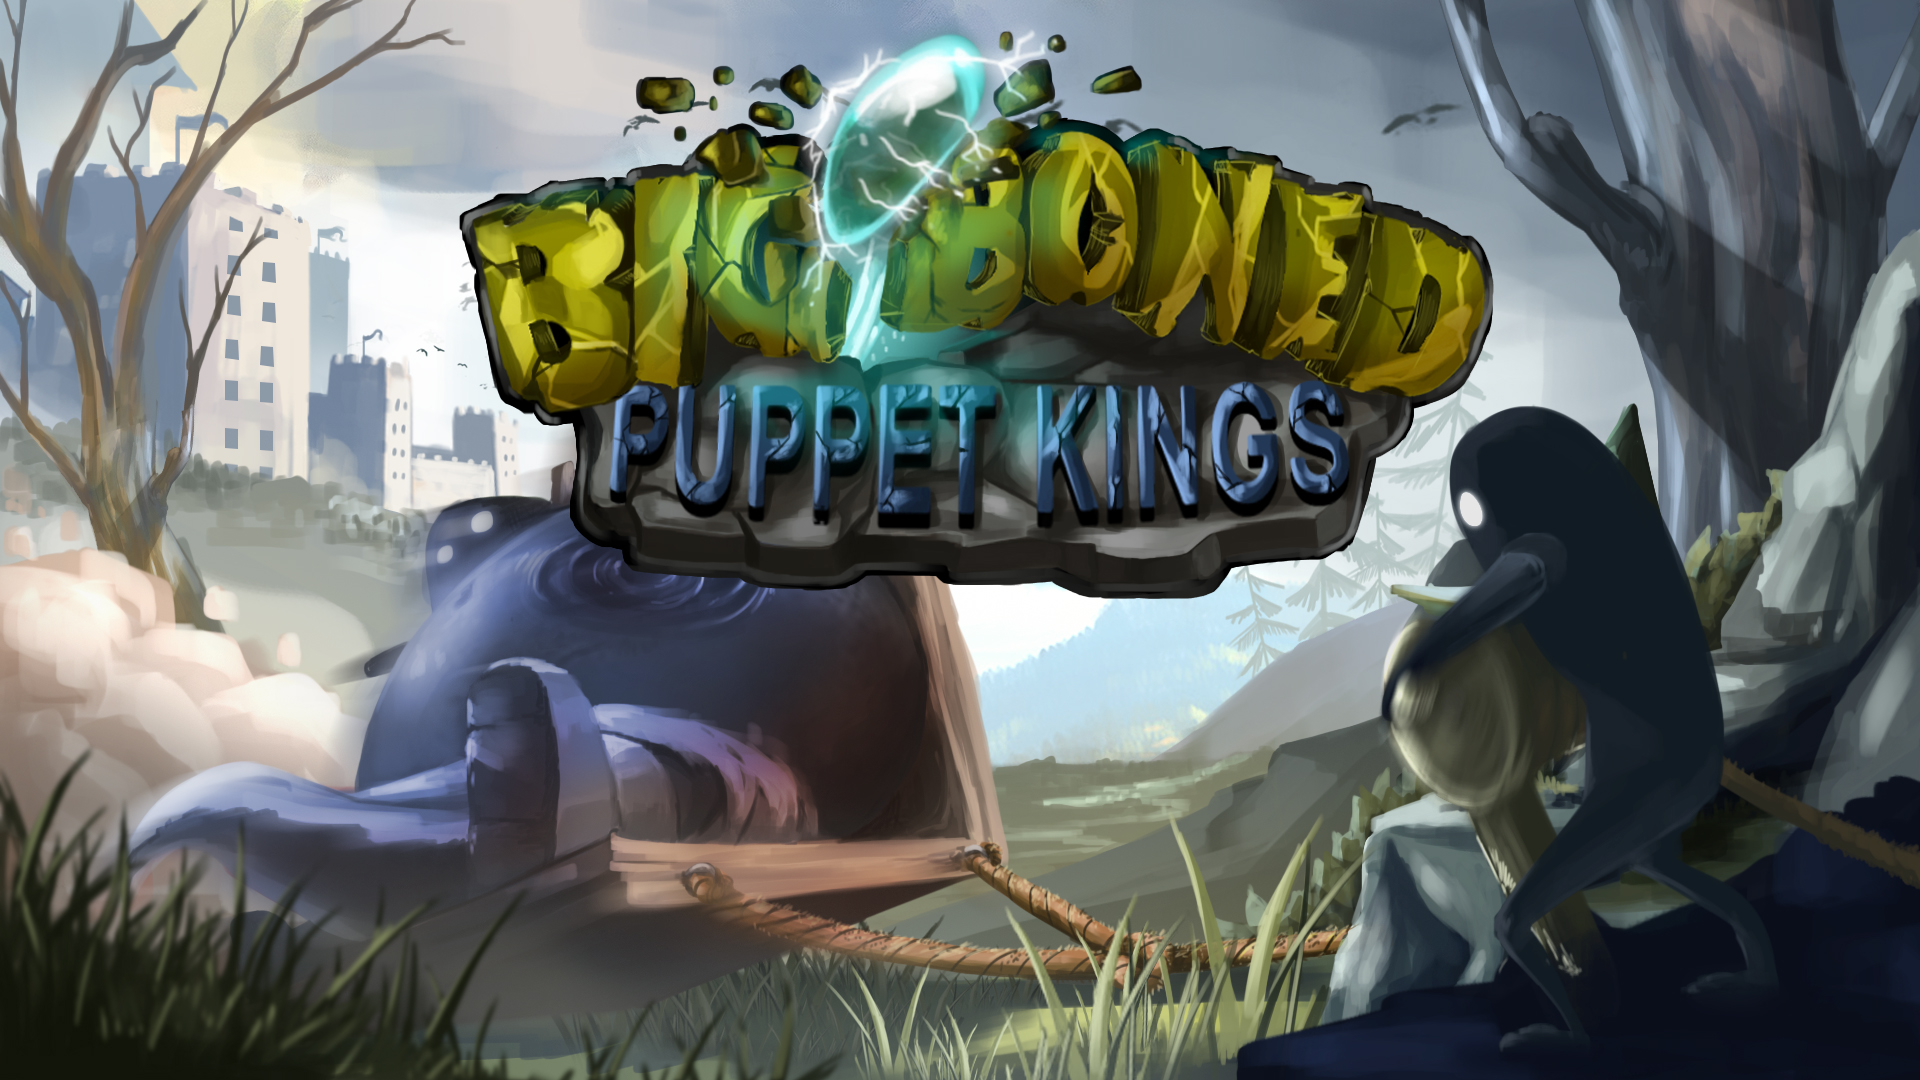 Big Boned Puppet Kings